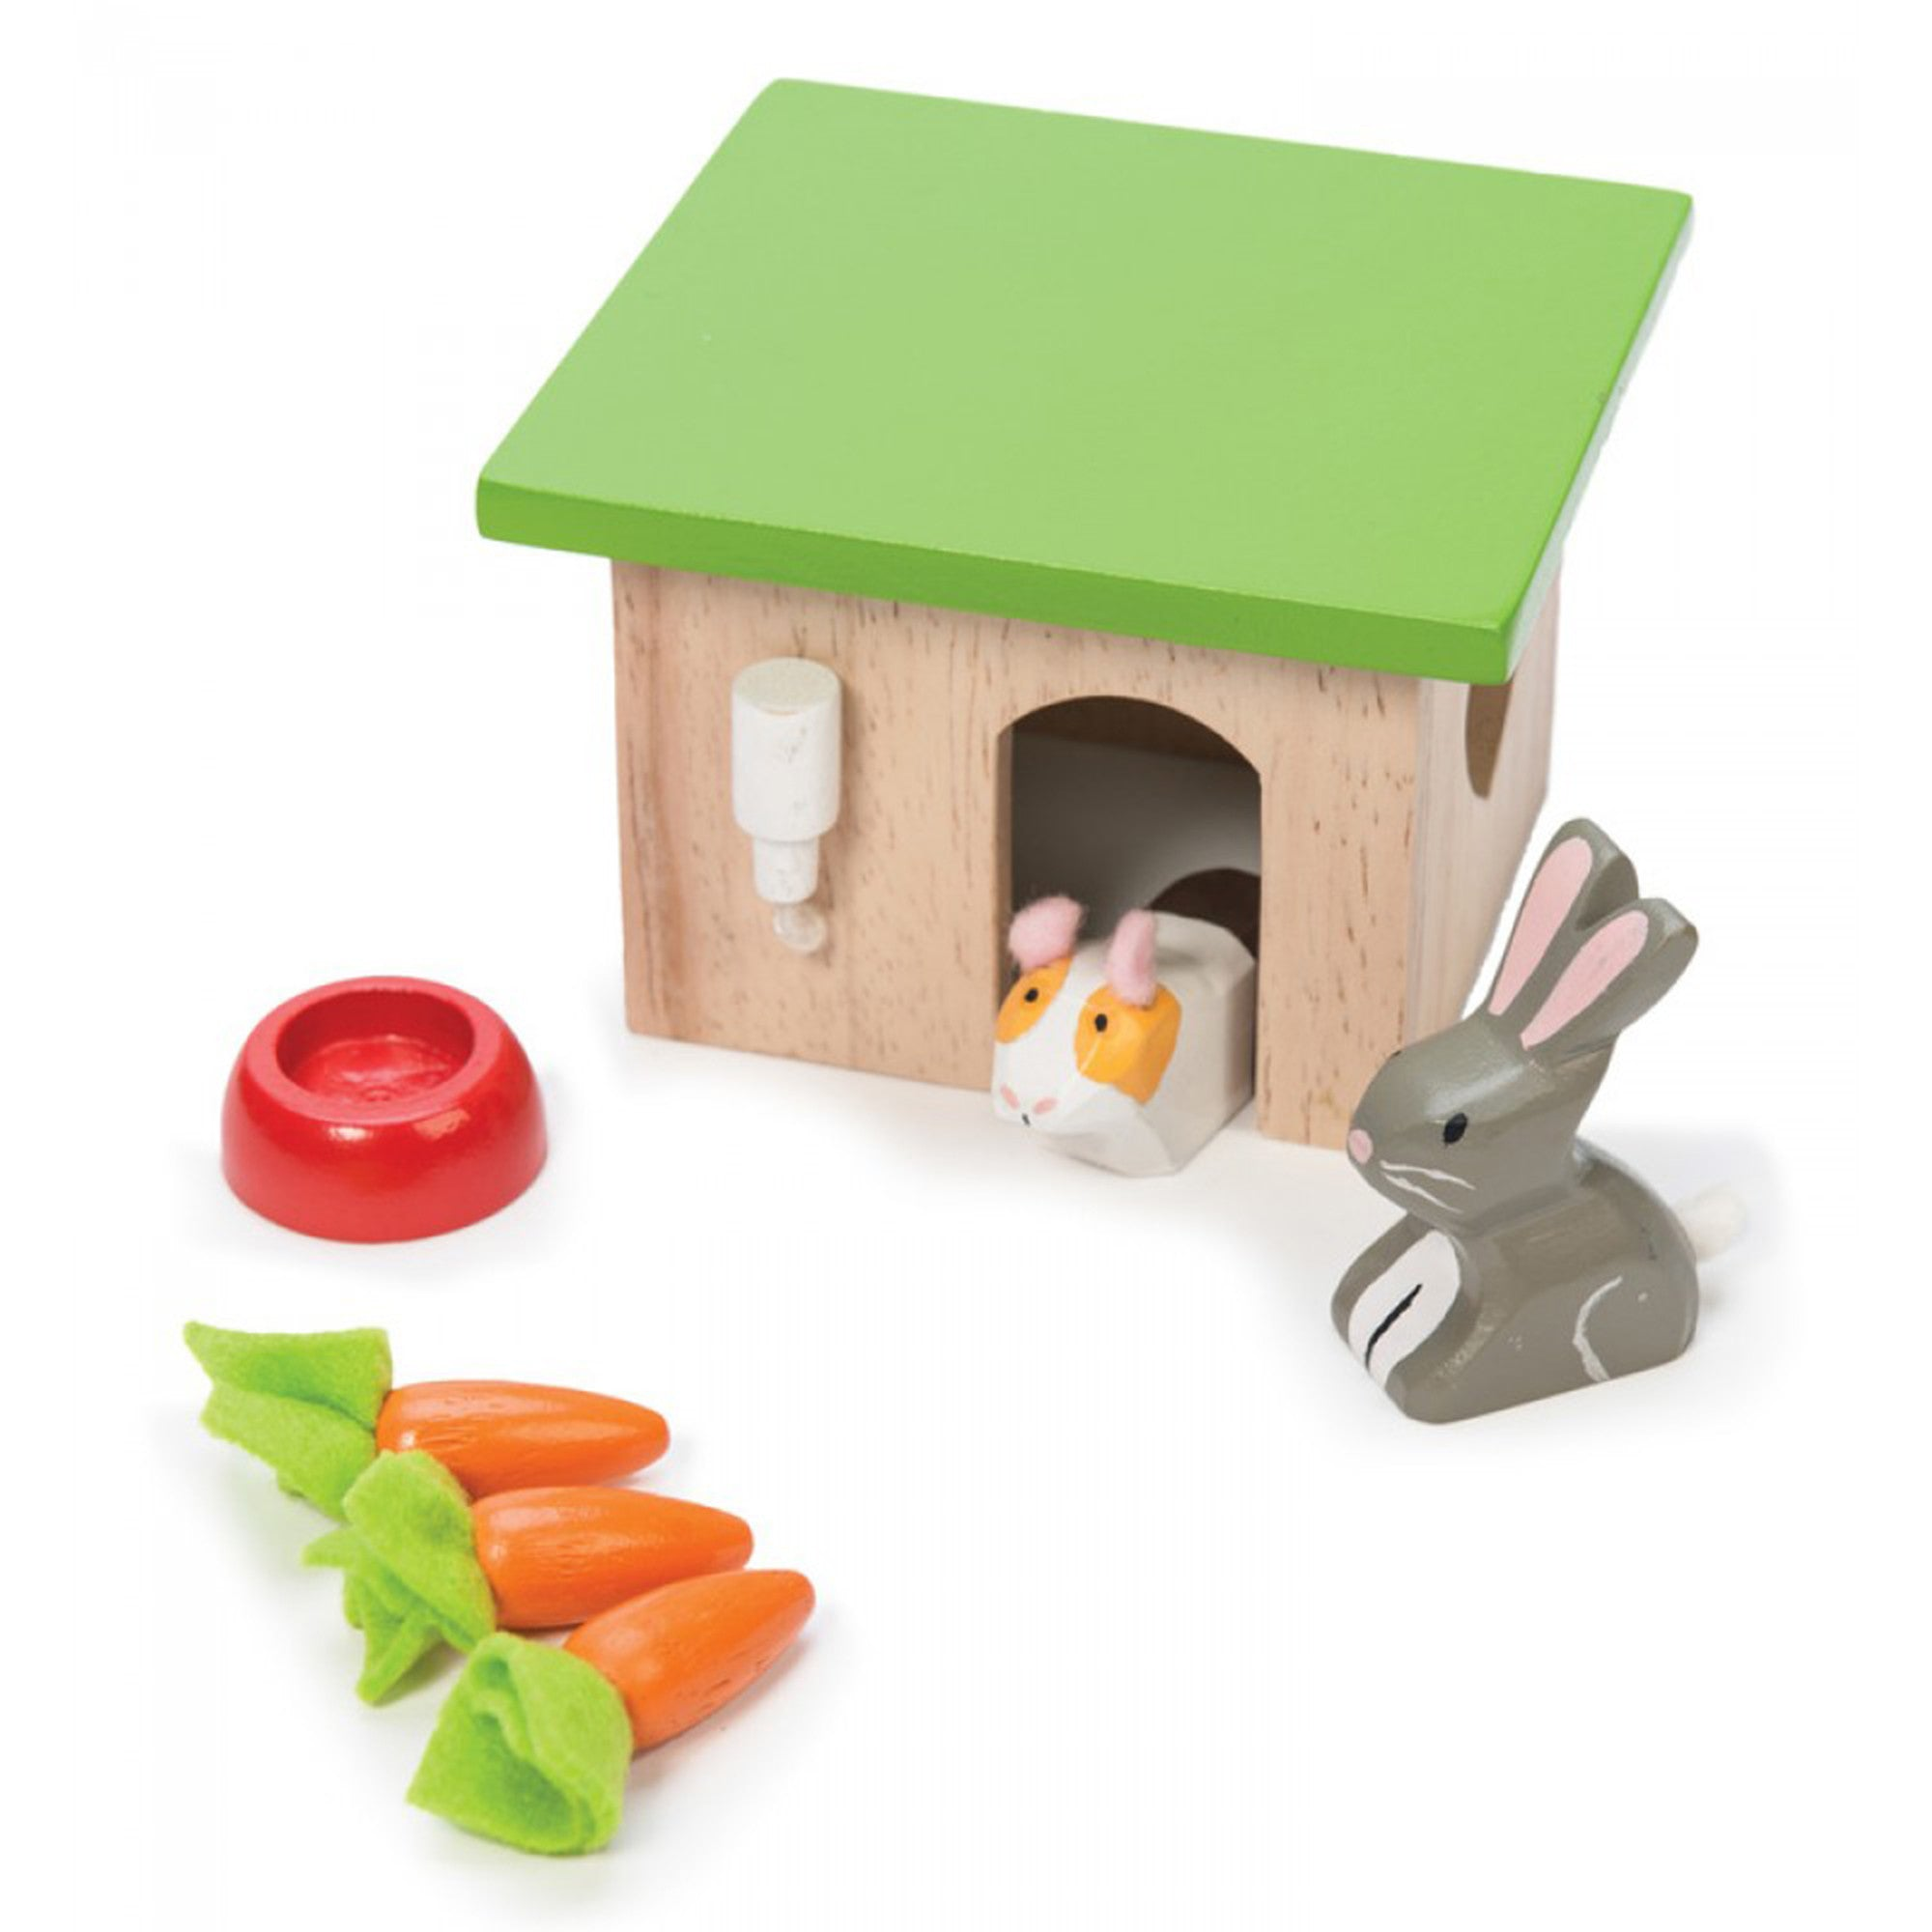 Le Toy Van Guinea Pig and Bunny Set Le Toy Van Dollhouse Accessories at Little Earth Nest Eco Shop